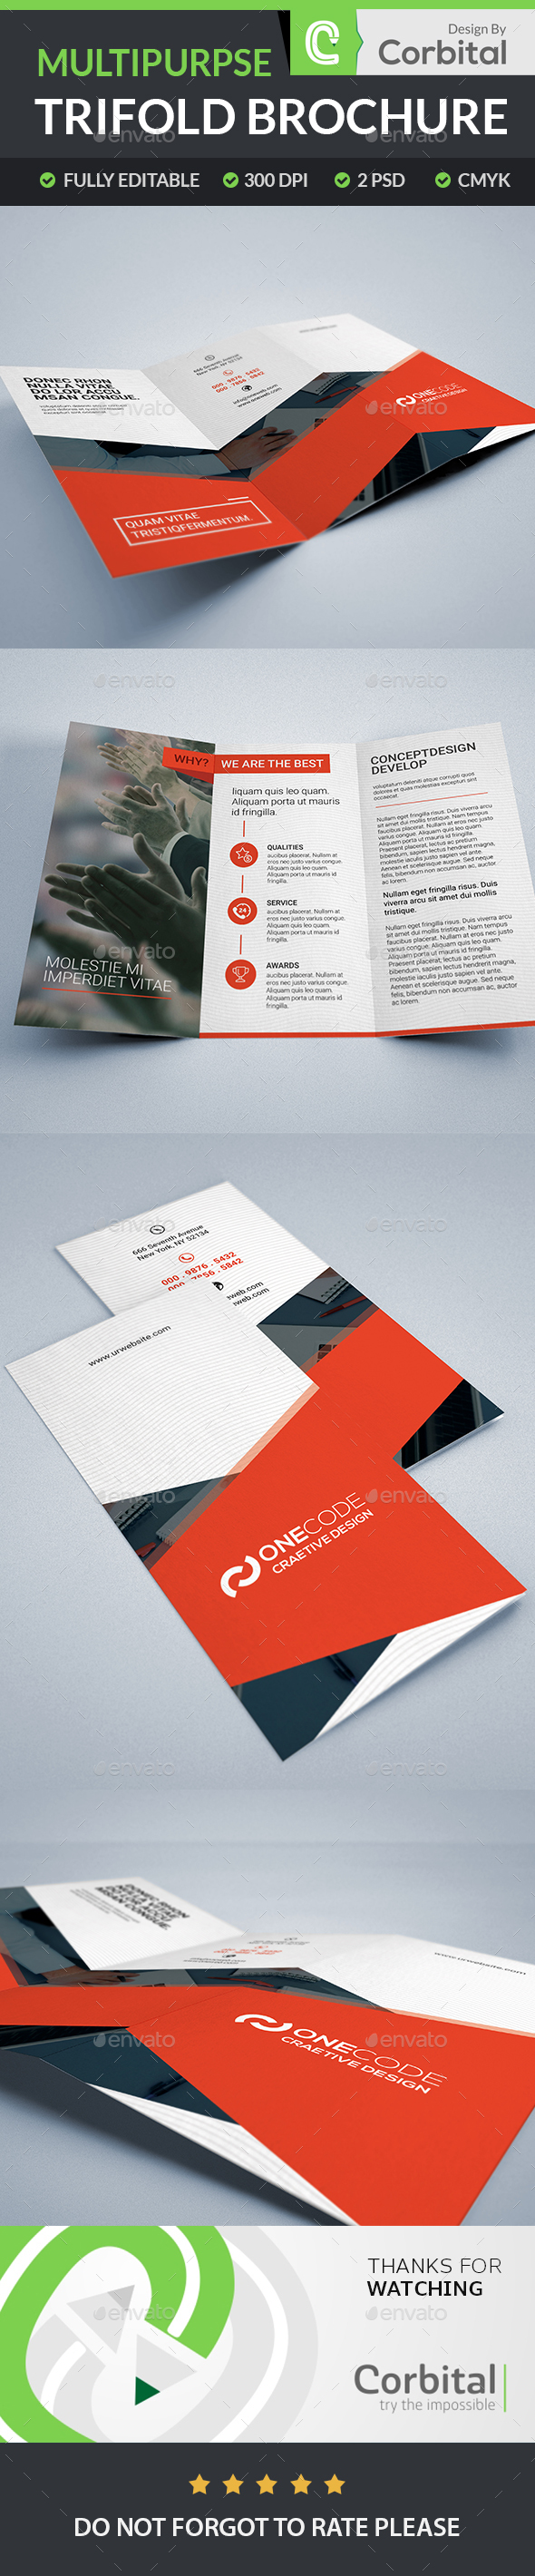 Multipurpse TriFold Brochure - Brochures Print Templates